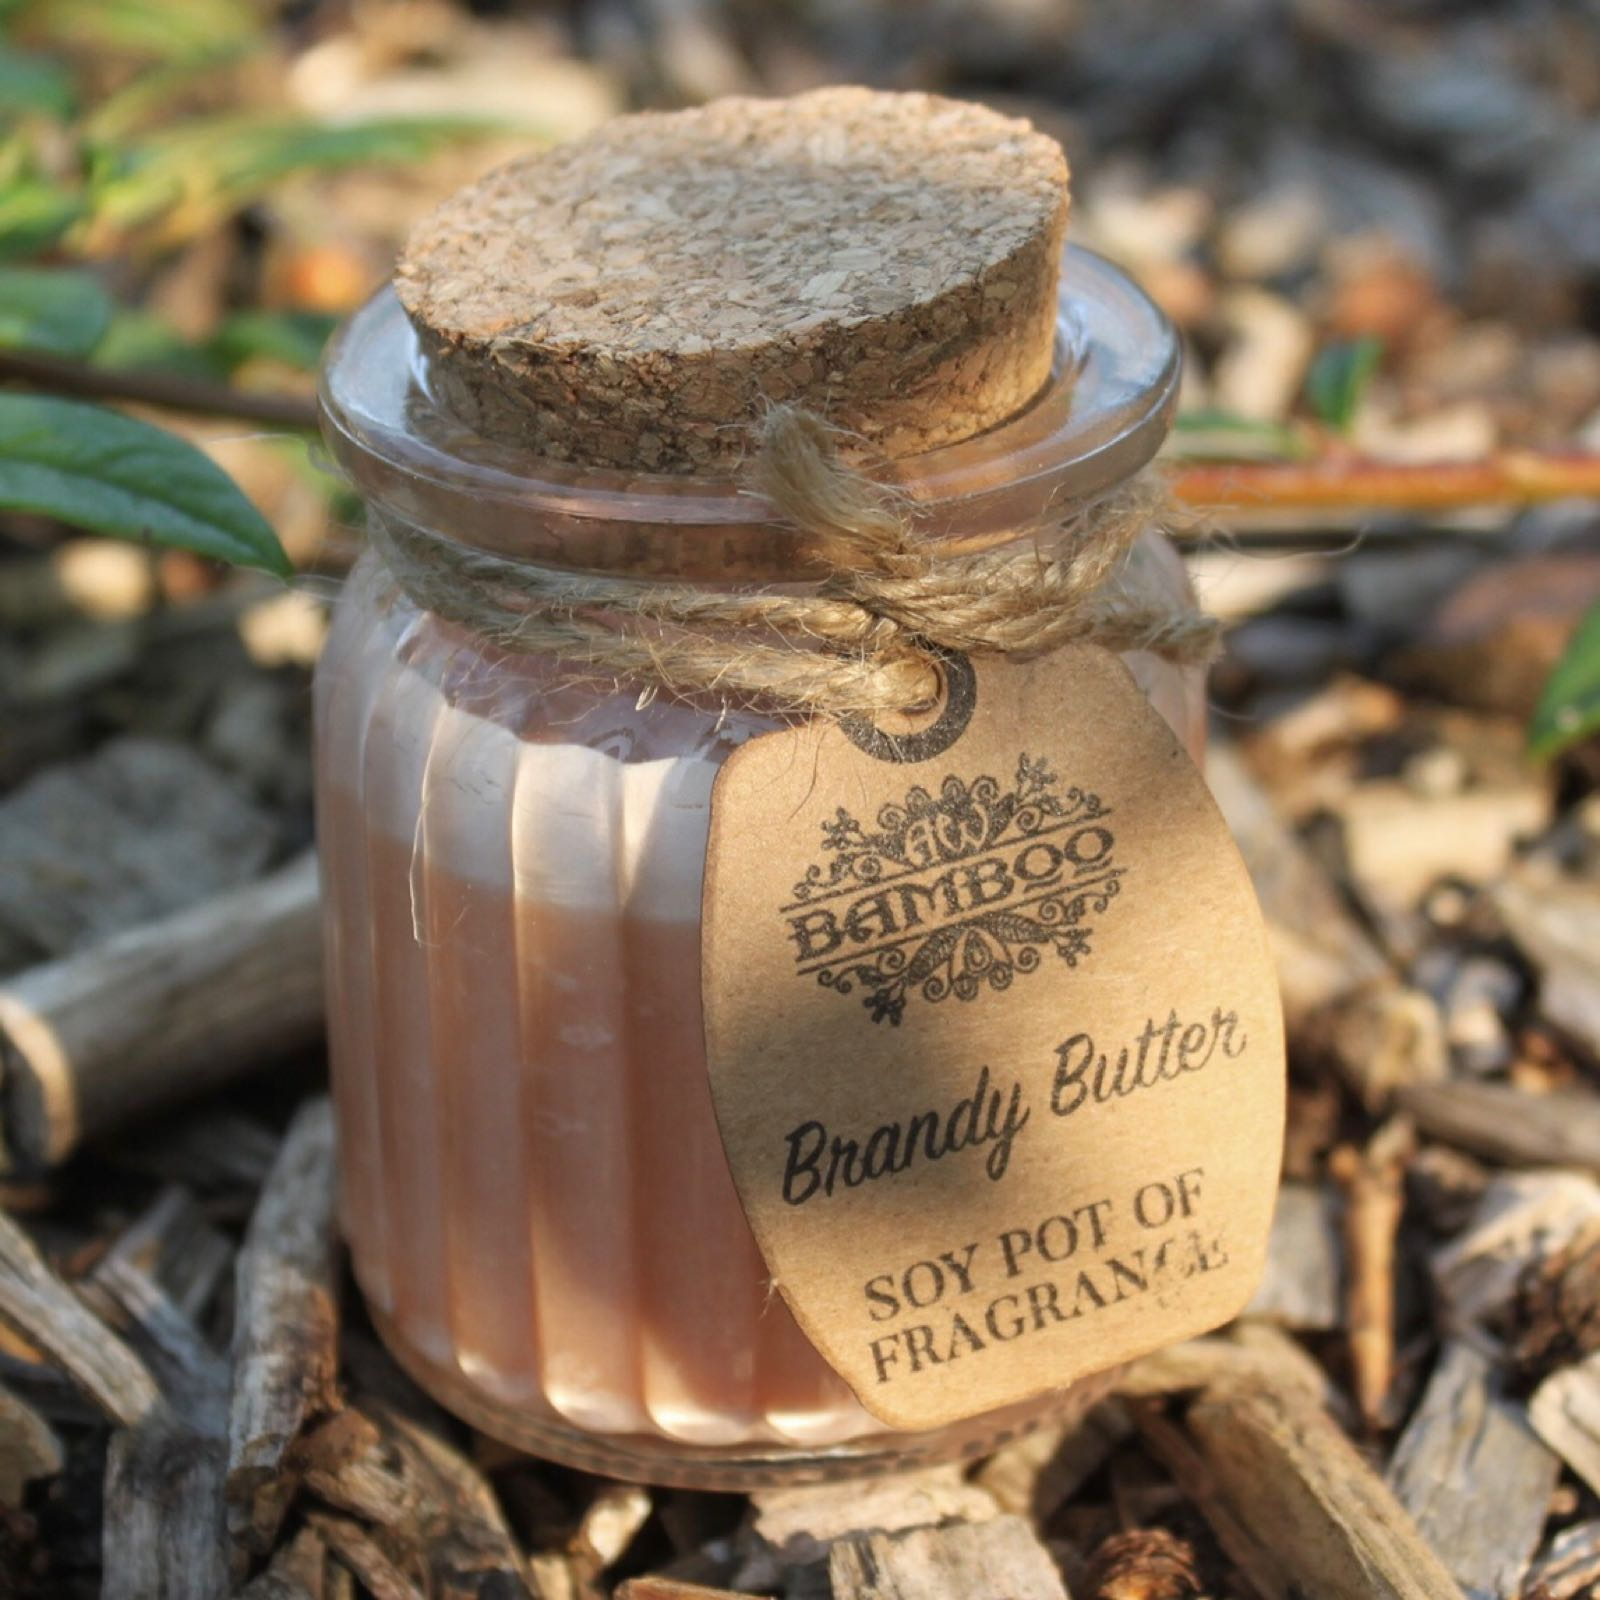 'Brandy Butter' Soy Pot Candle (Was £3.50)